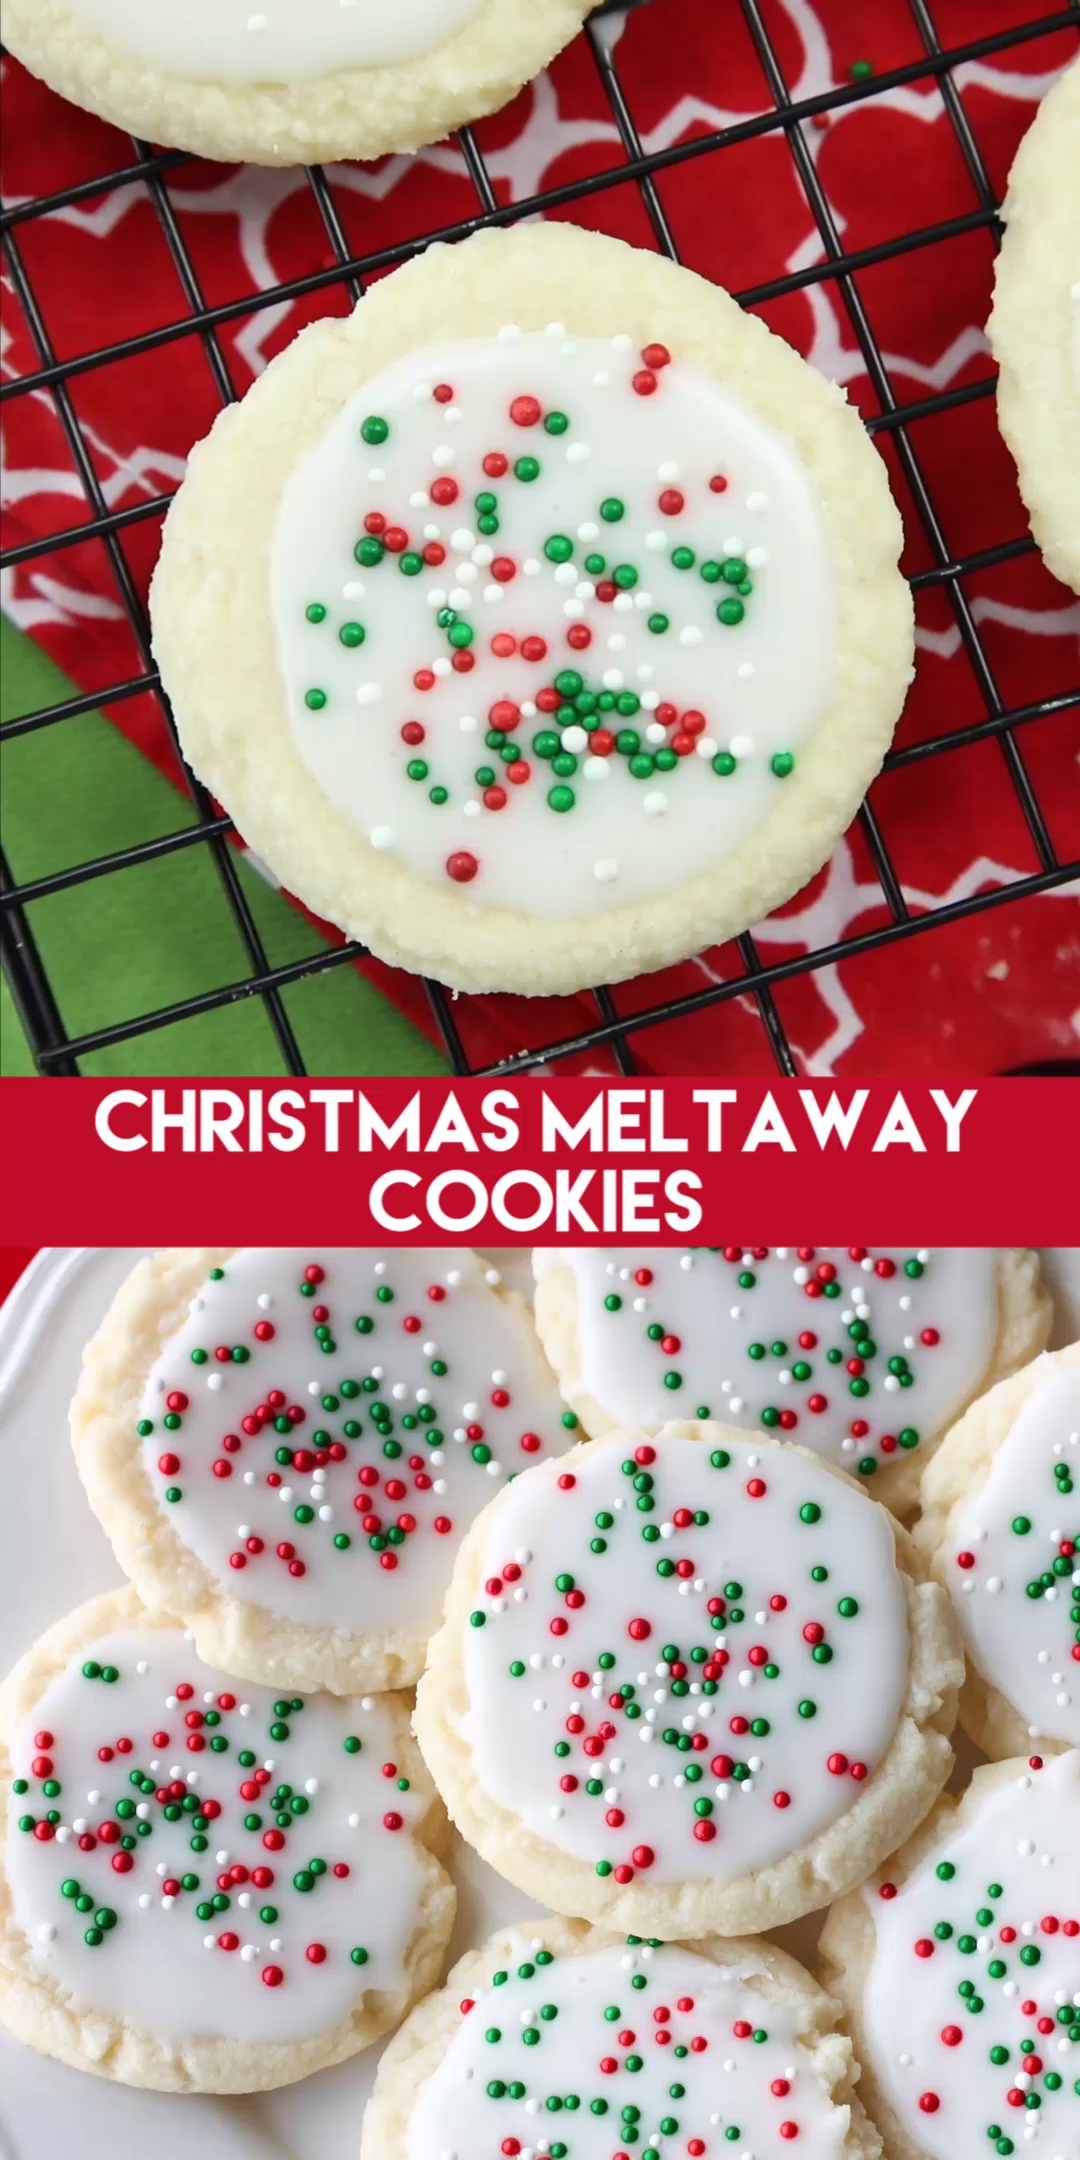 Meltaway cookies are a soft, lightly sweet shortbread cookie that literally melt…